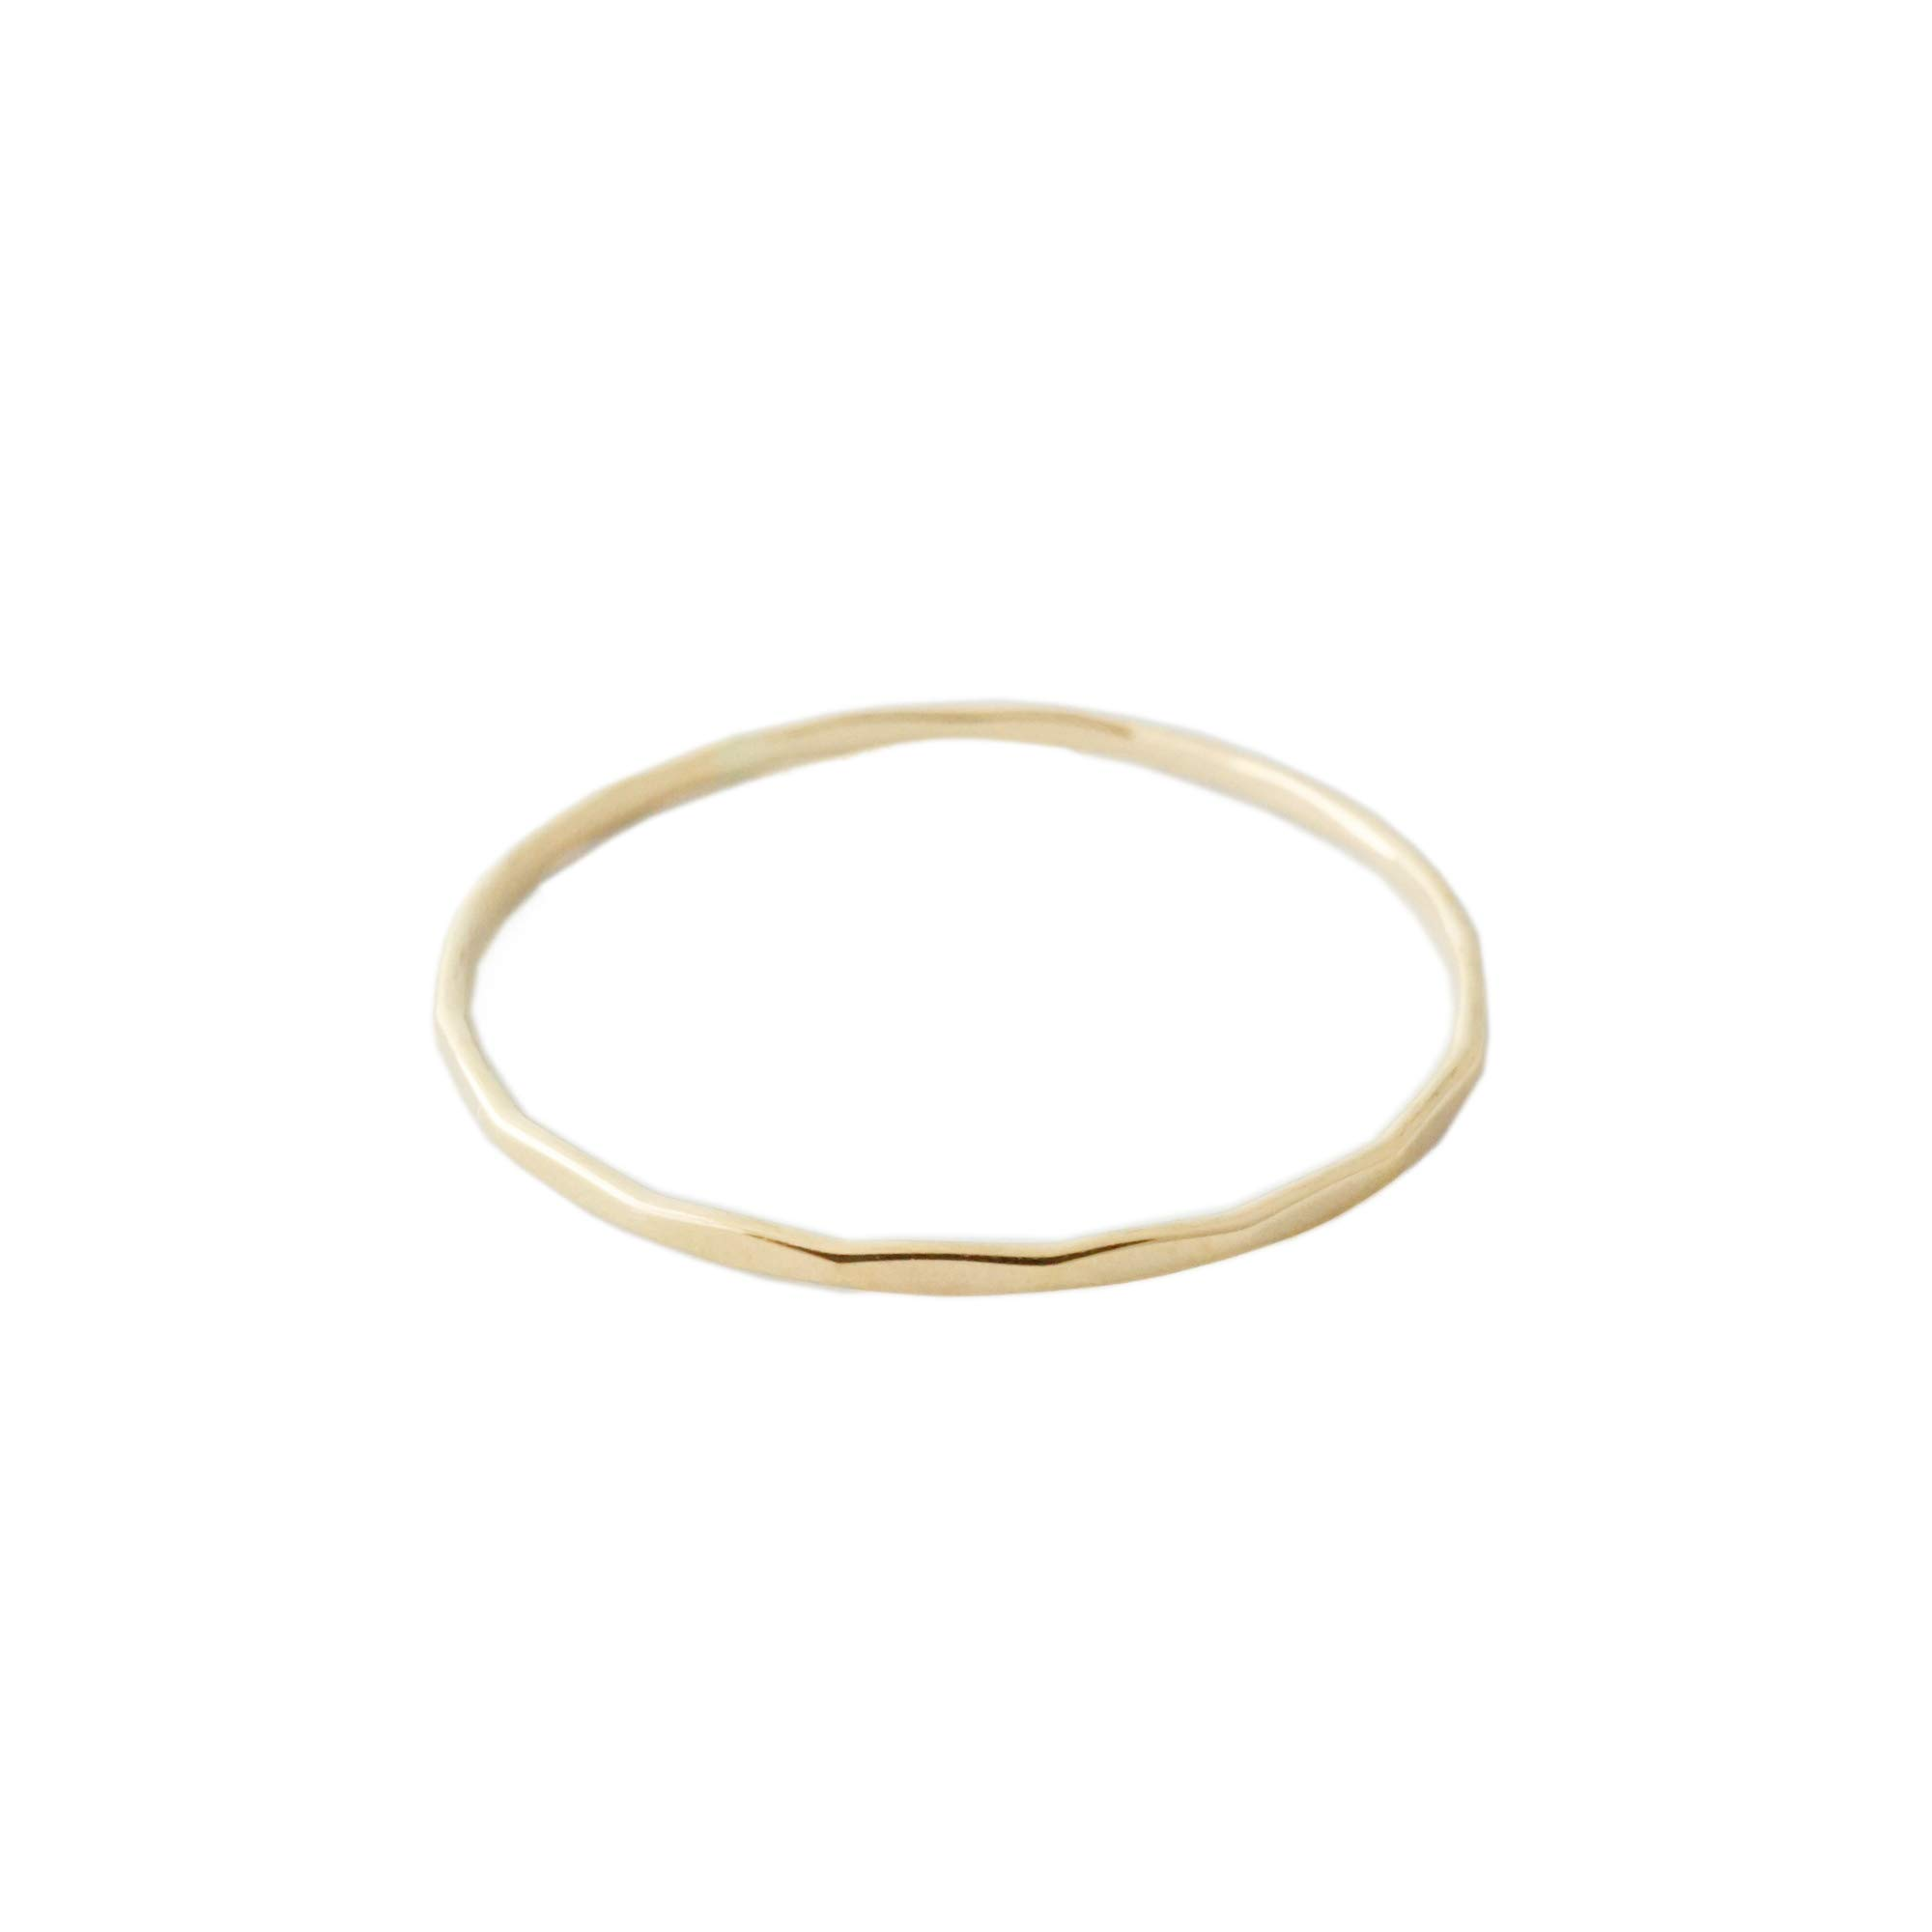 HONEYCAT Super Skinny Hammered Stacking Ring in Solid 14K Gold or 14k Rose Gold (Size 5-9) (Gold, 5) by HONEYCAT